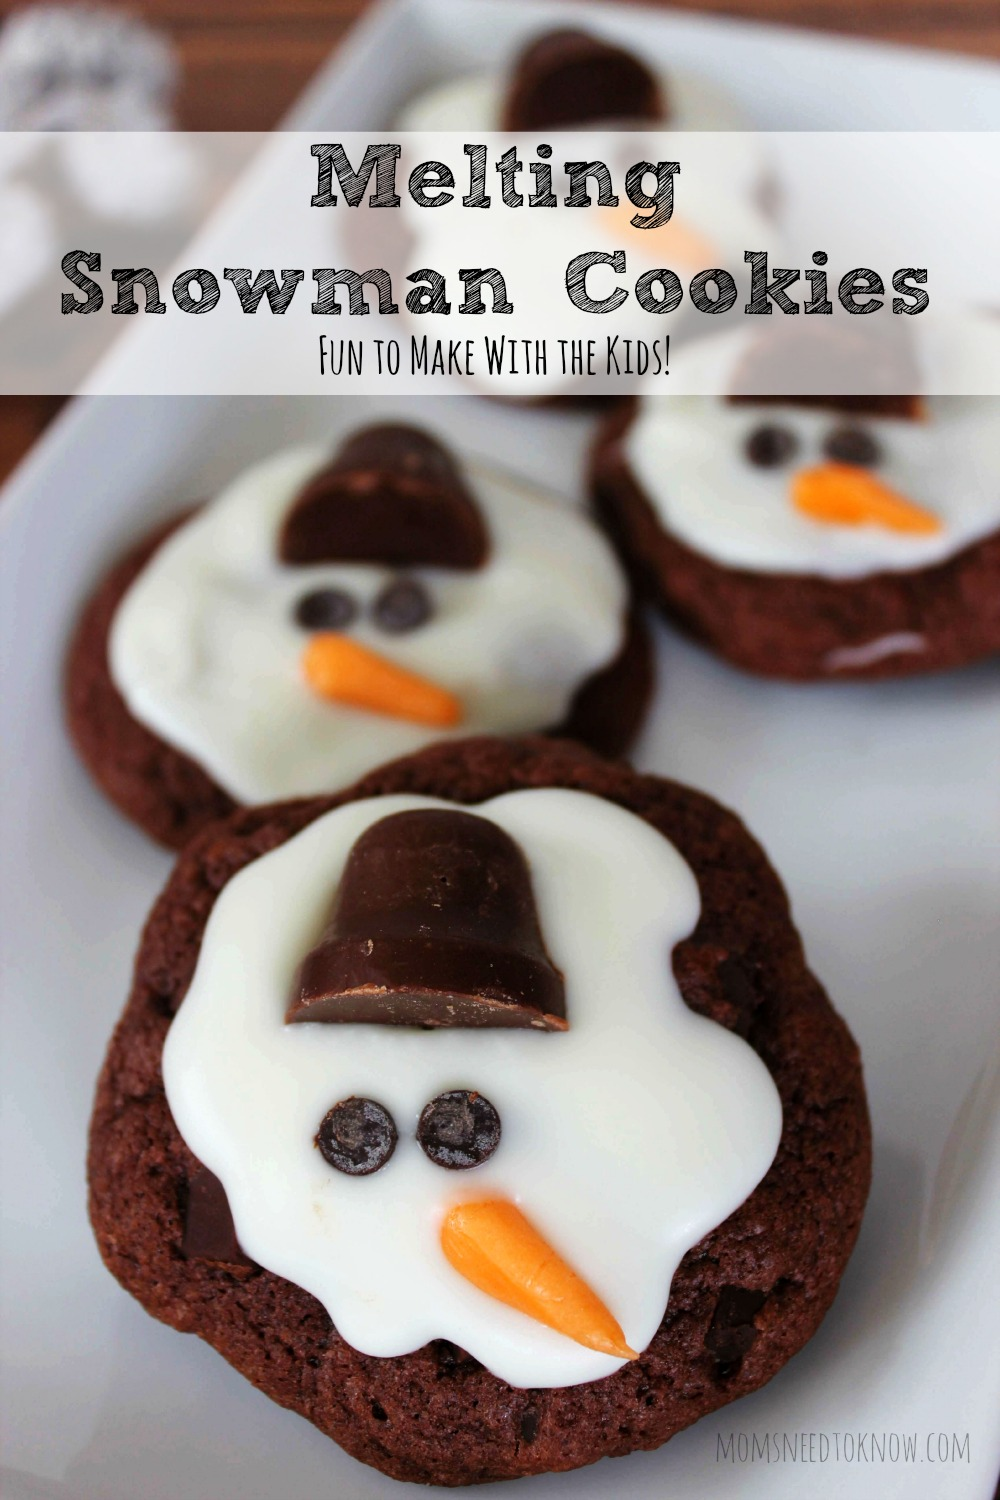 Melting Snowman Cookies Moms Need To Know